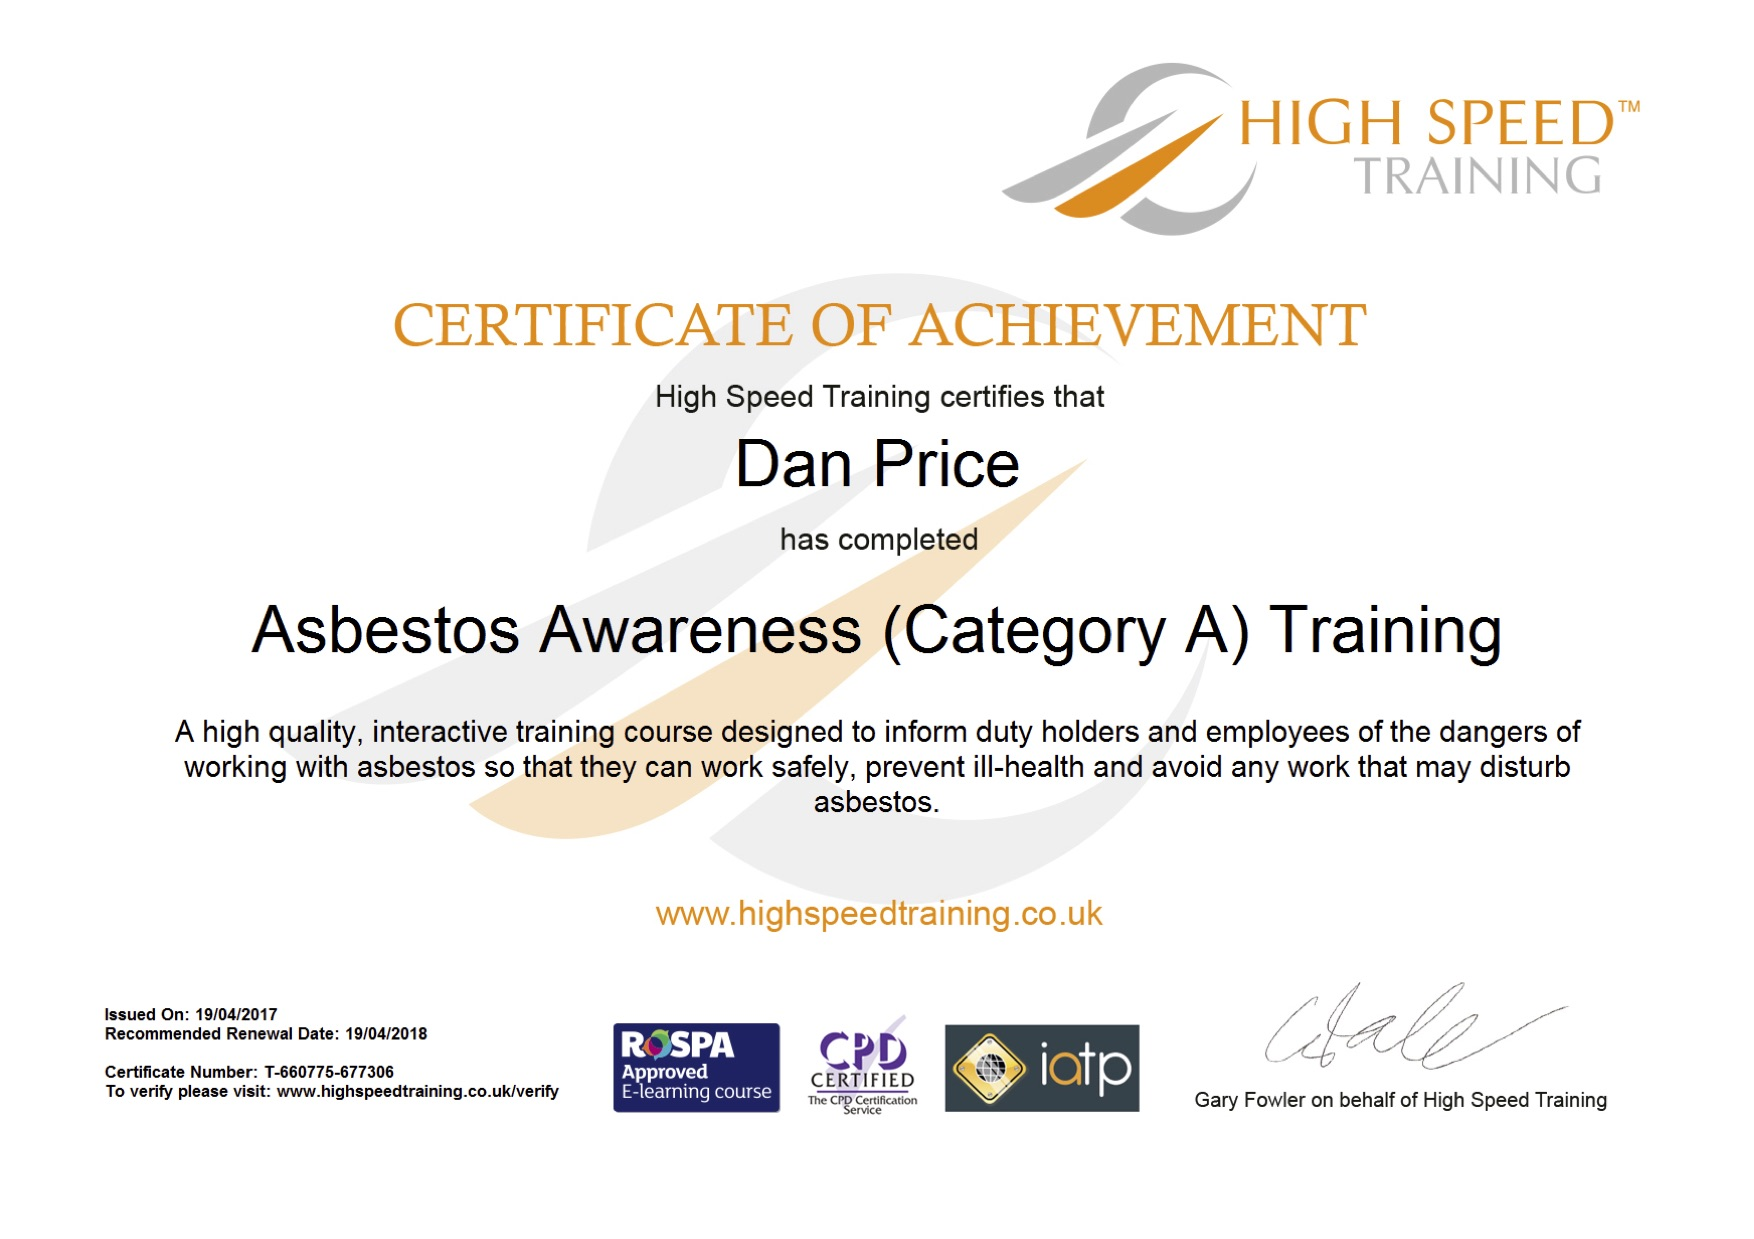 Asbestos awareness certificate template gallery templates cpd certificate template image collections templates example best of images of cpd certification business cards and xflitez Gallery